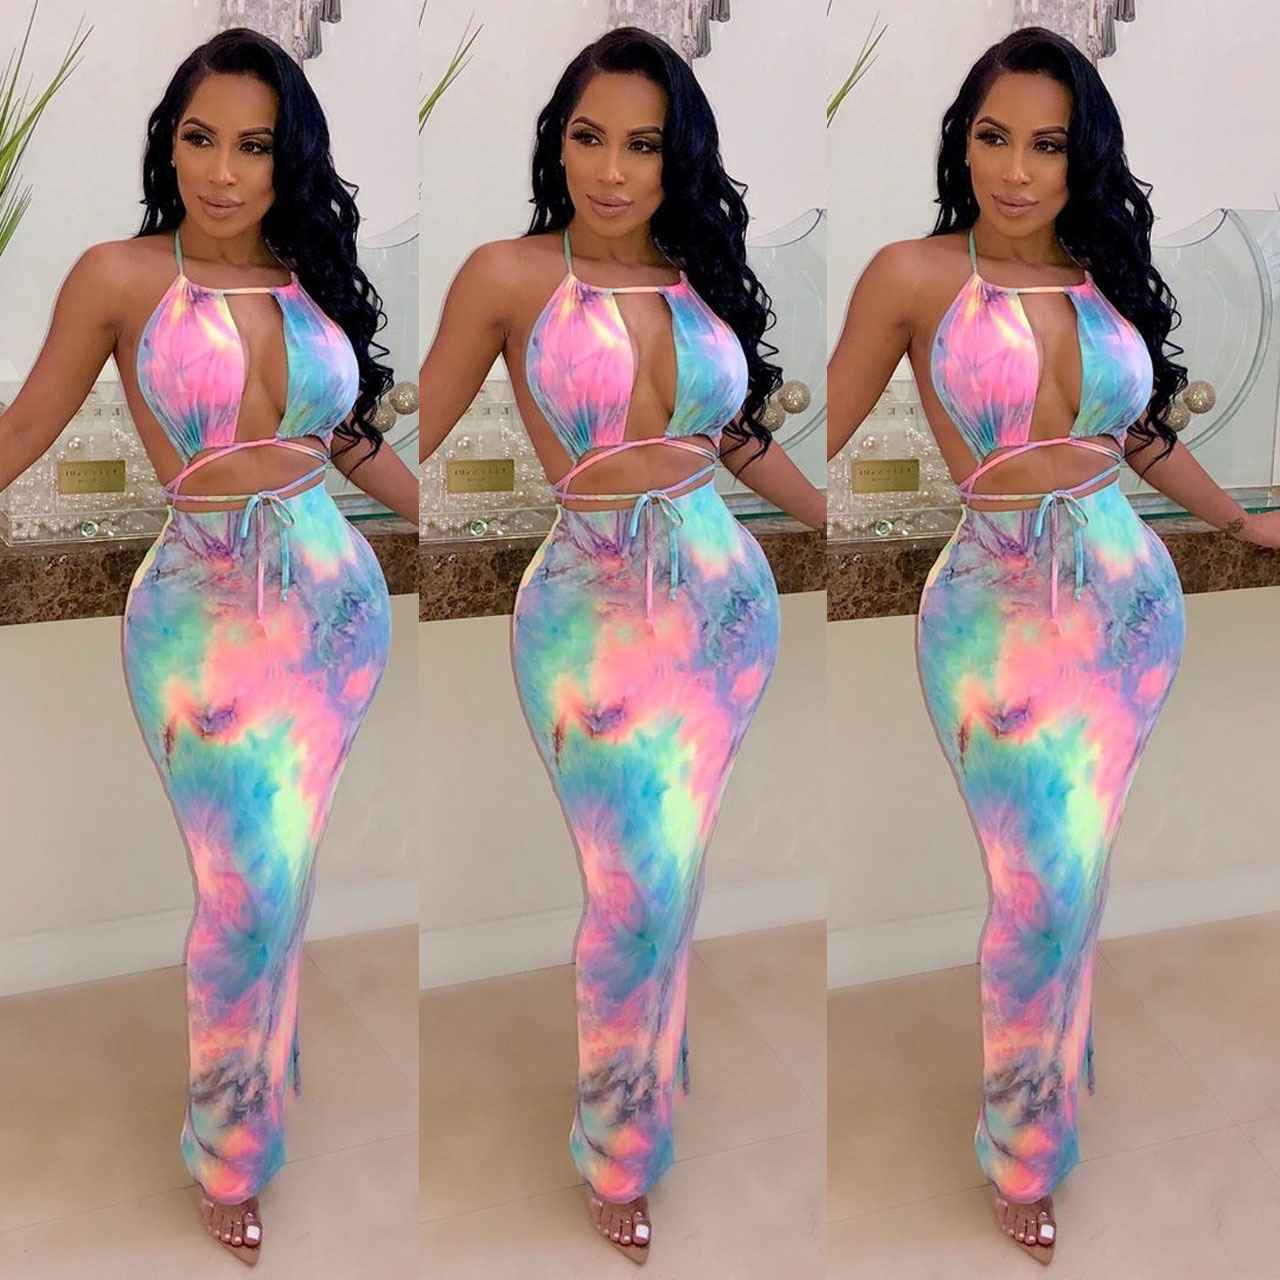 Summer New Women's Tie-dyed Printed Tube Top Hanging Neck Mid-waist Sleeve Dress Beach Party Pencil Dress K8036